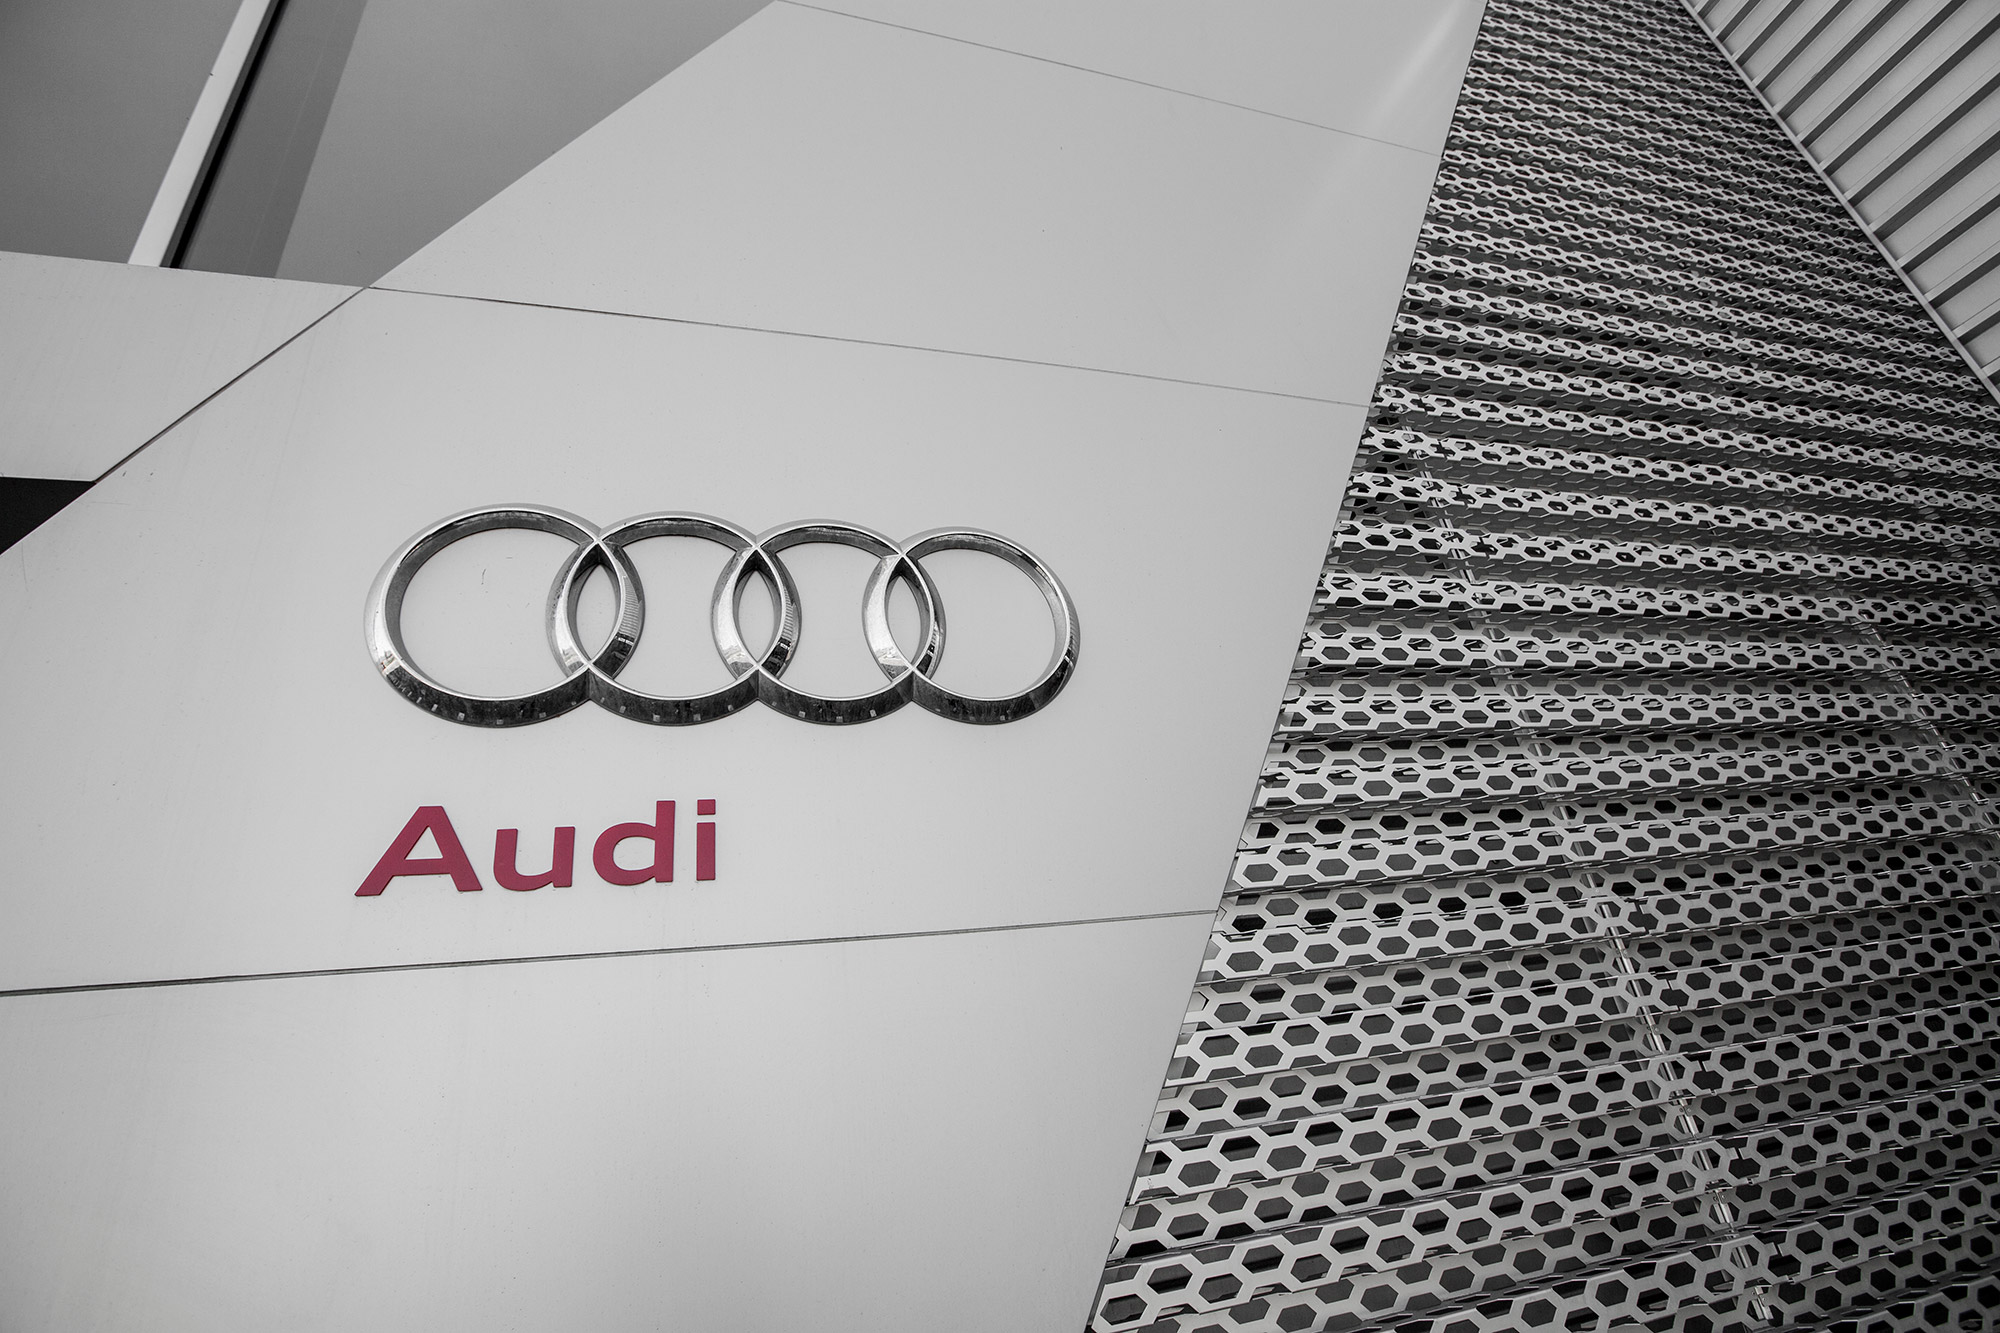 Audi South Africa